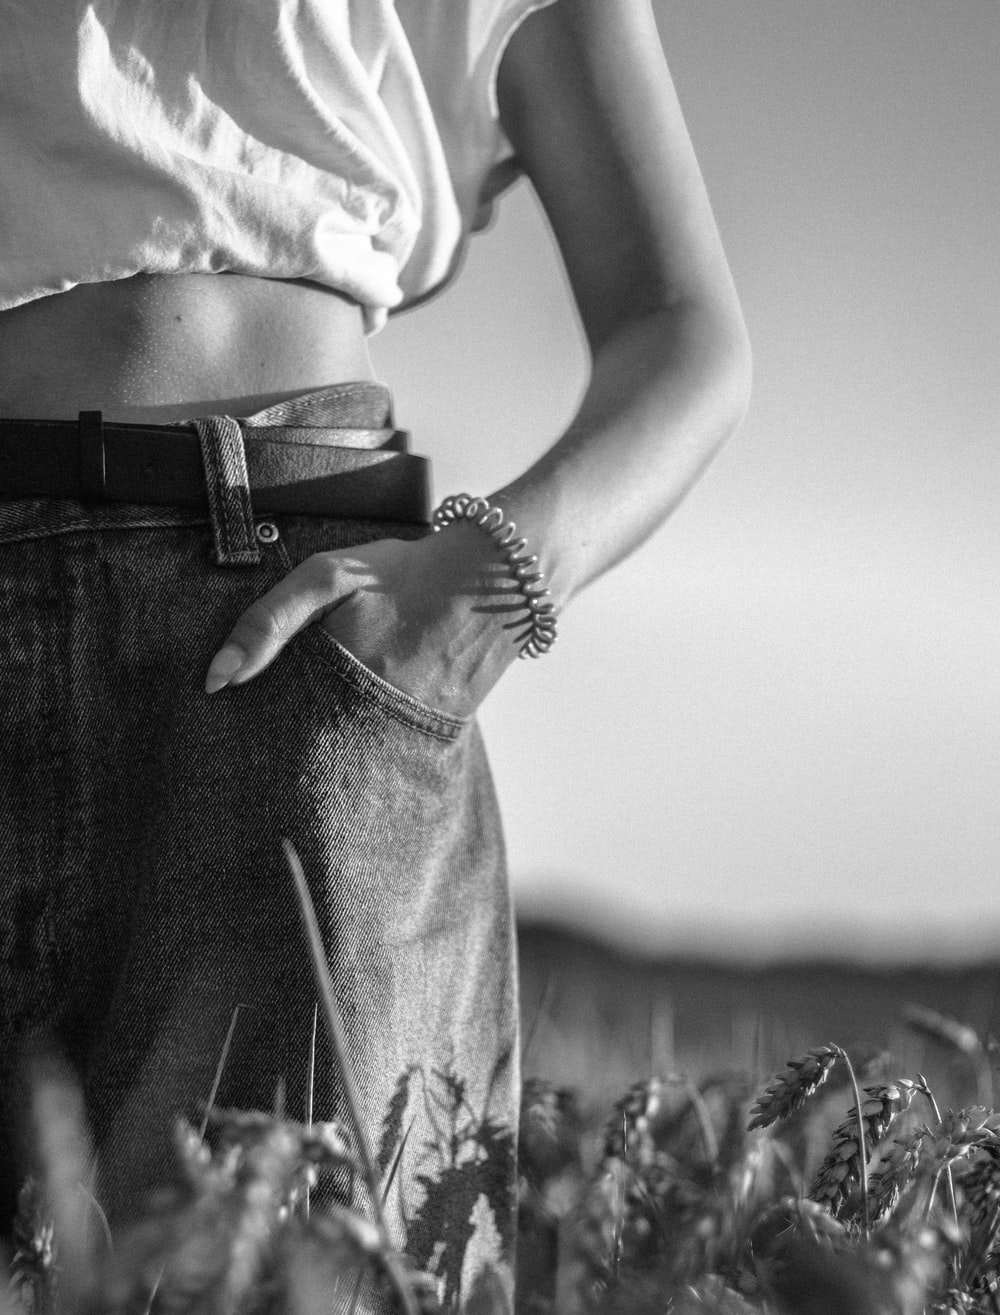 grayscale photo of woman in crop top and denim jeans